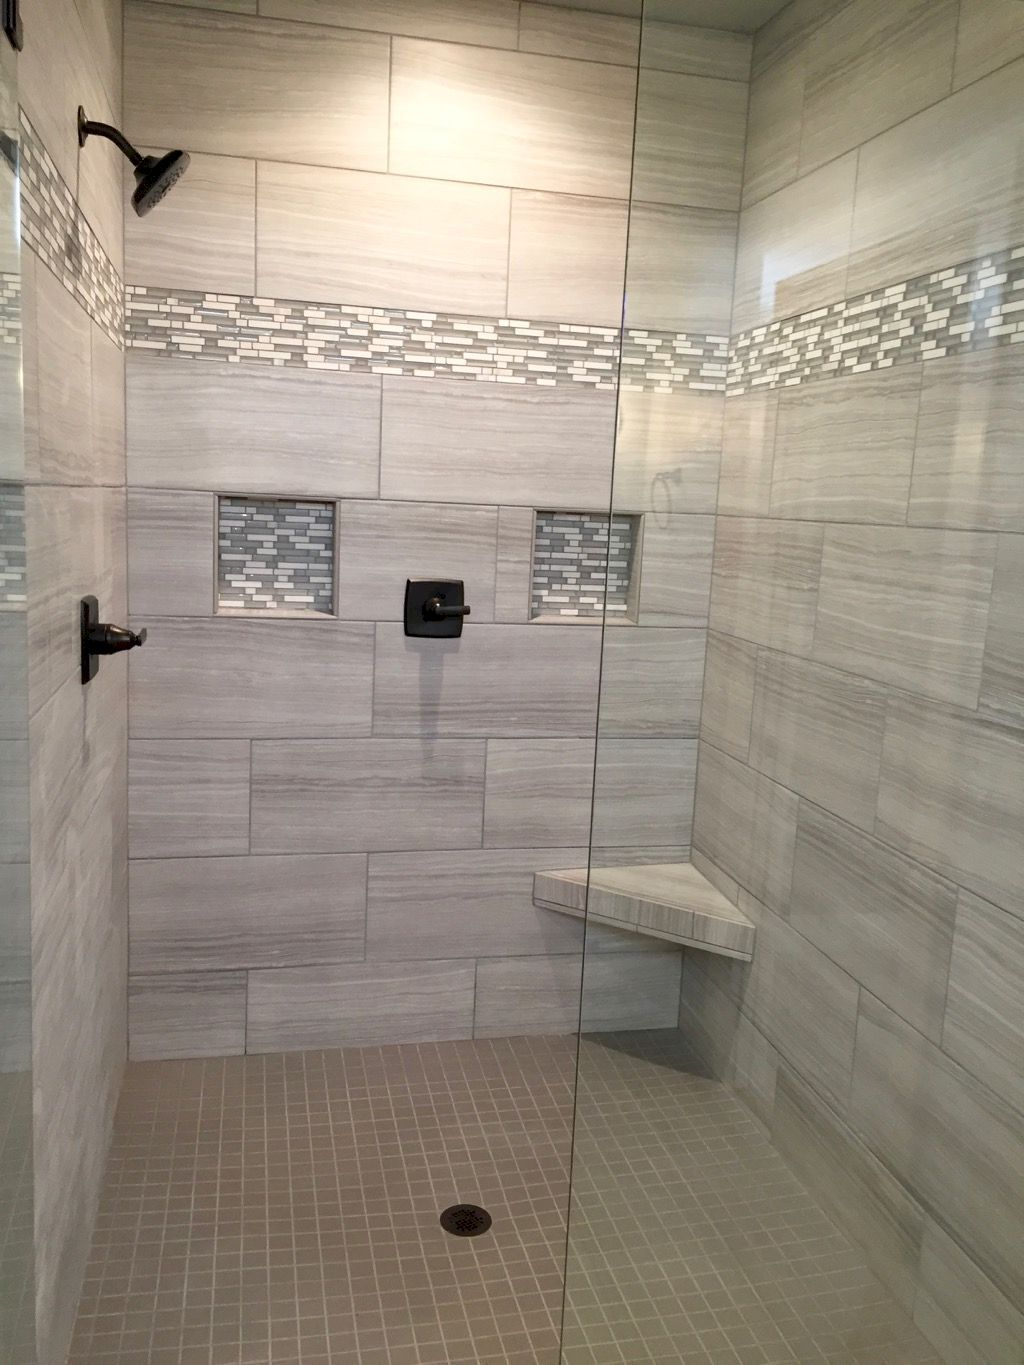 Small Bathroom Designs On A Budget Delectable Fresh Small Master Bathroom Remodel Ideas On A Budget 14  Master Decorating Design